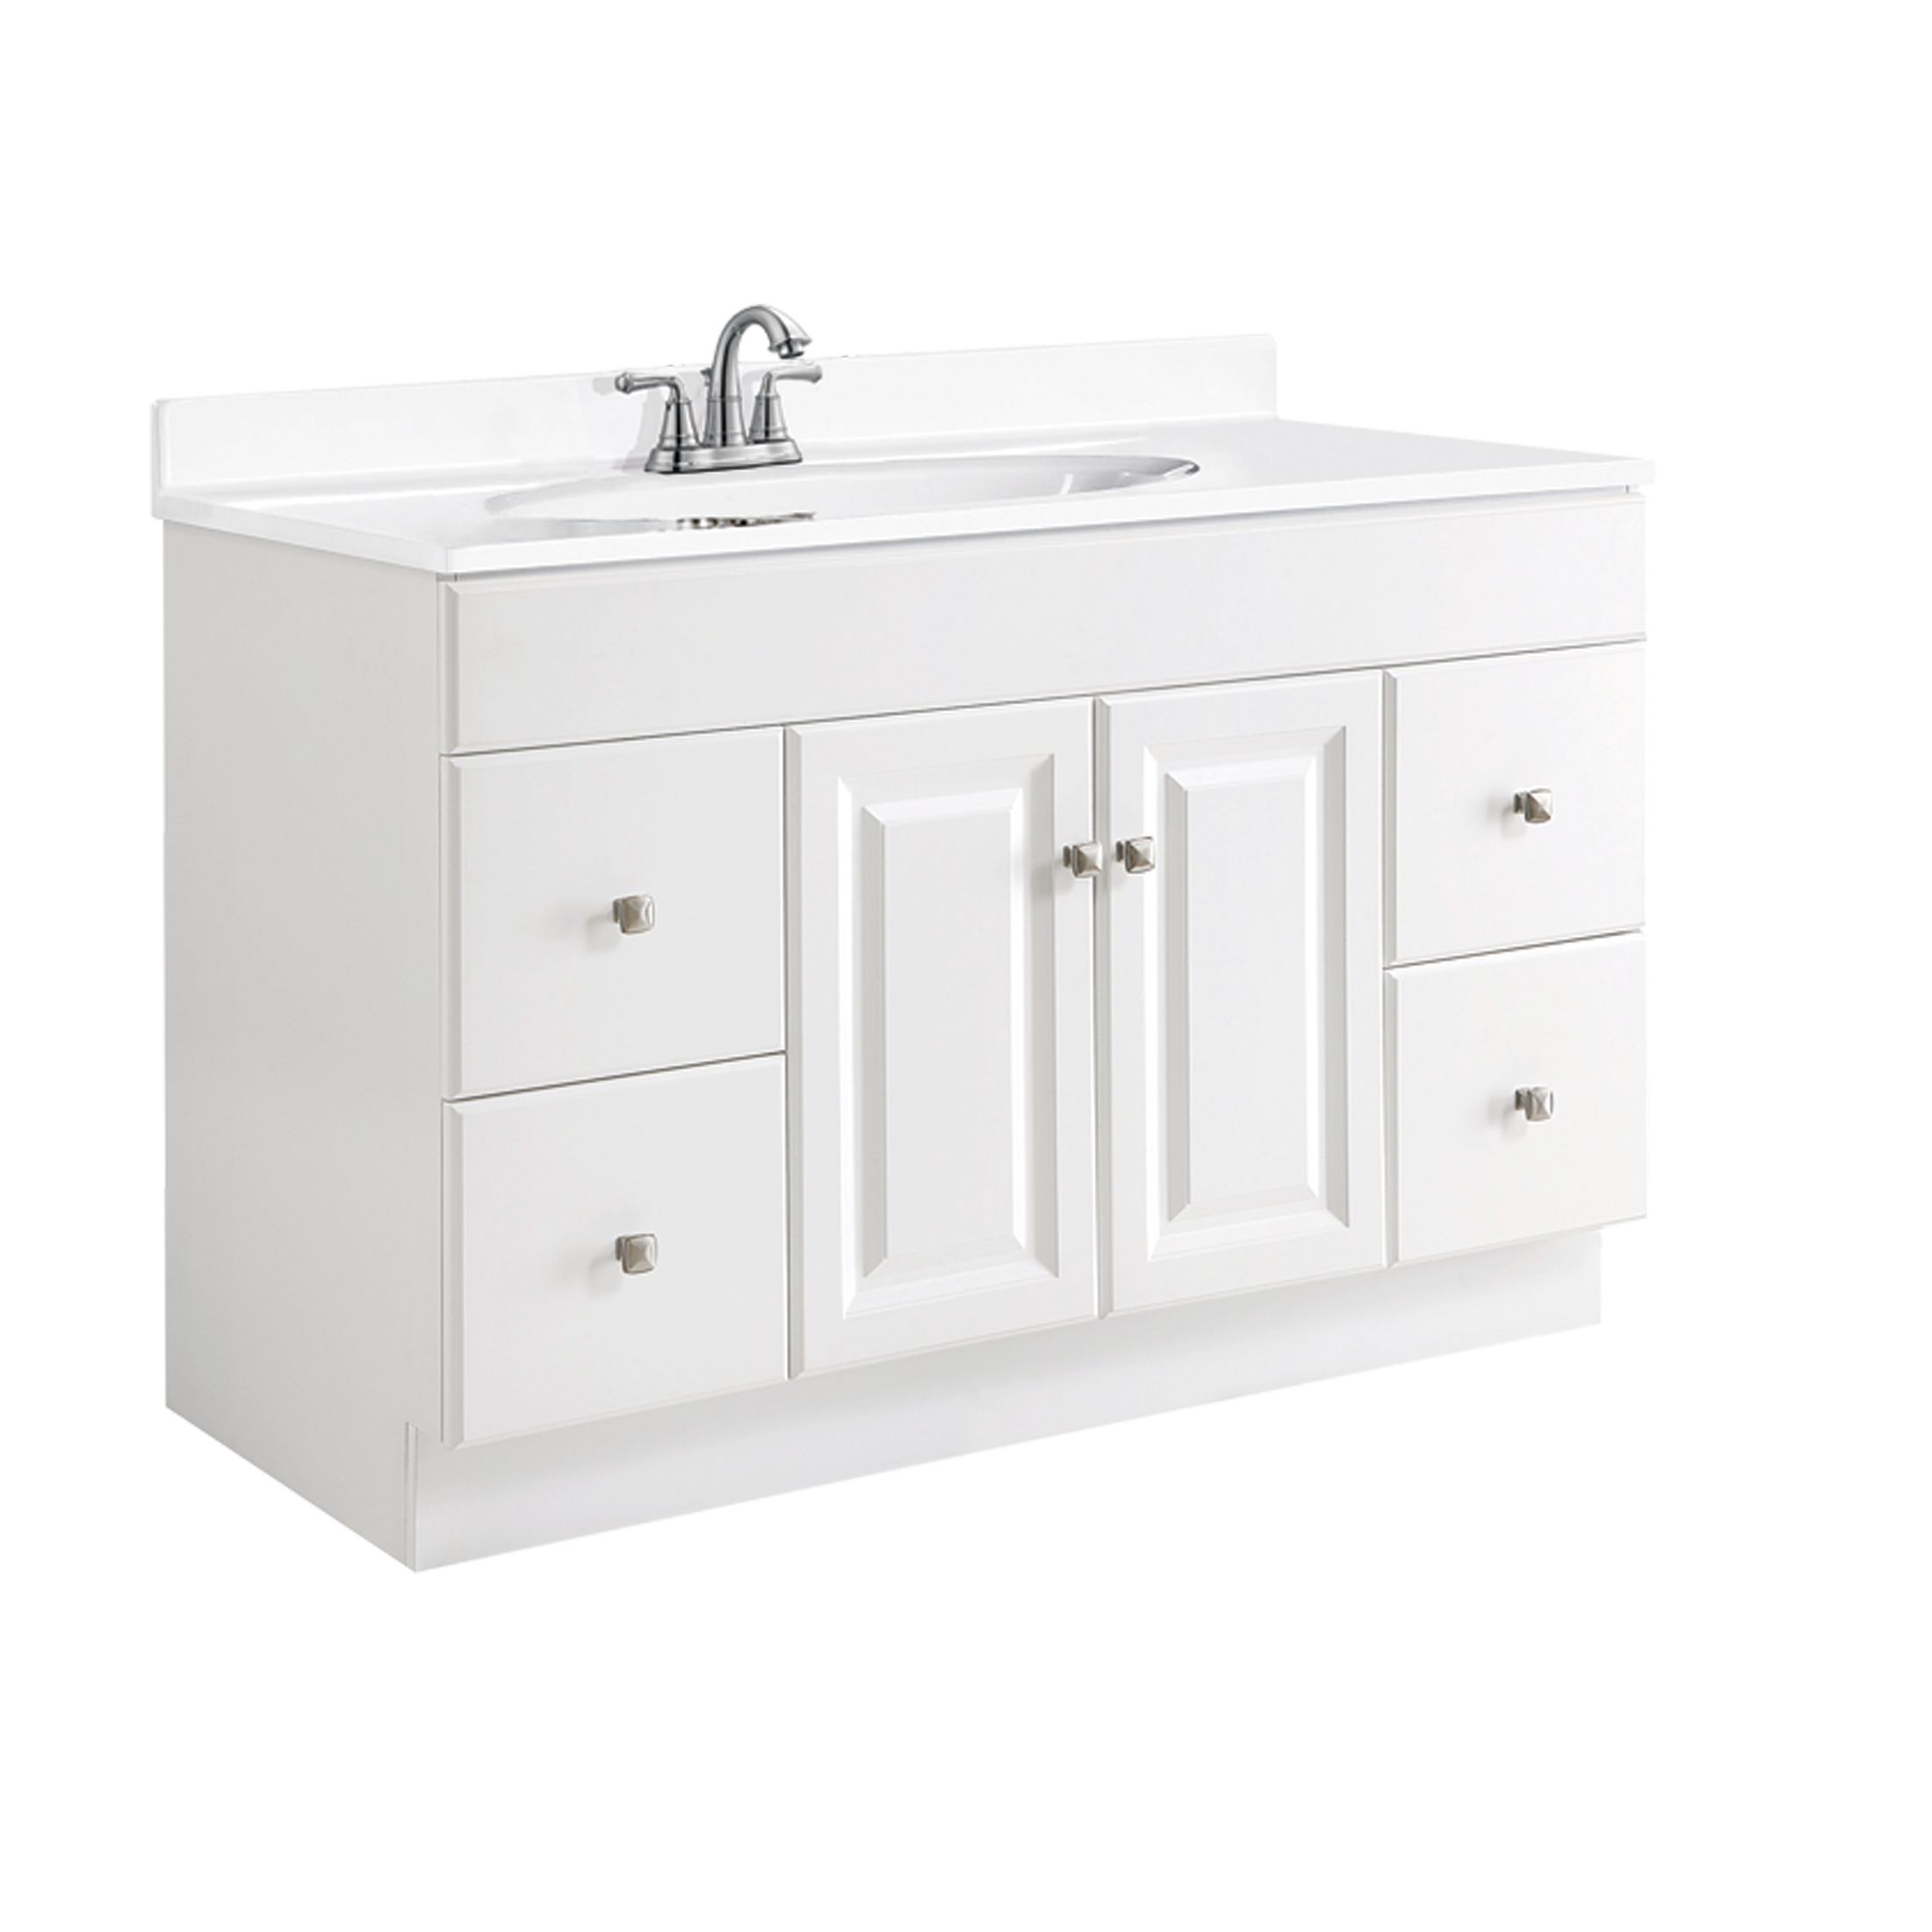 "Wyndham 2-Door 4-Drawer Vanity Cabinet 48"", White #531145"